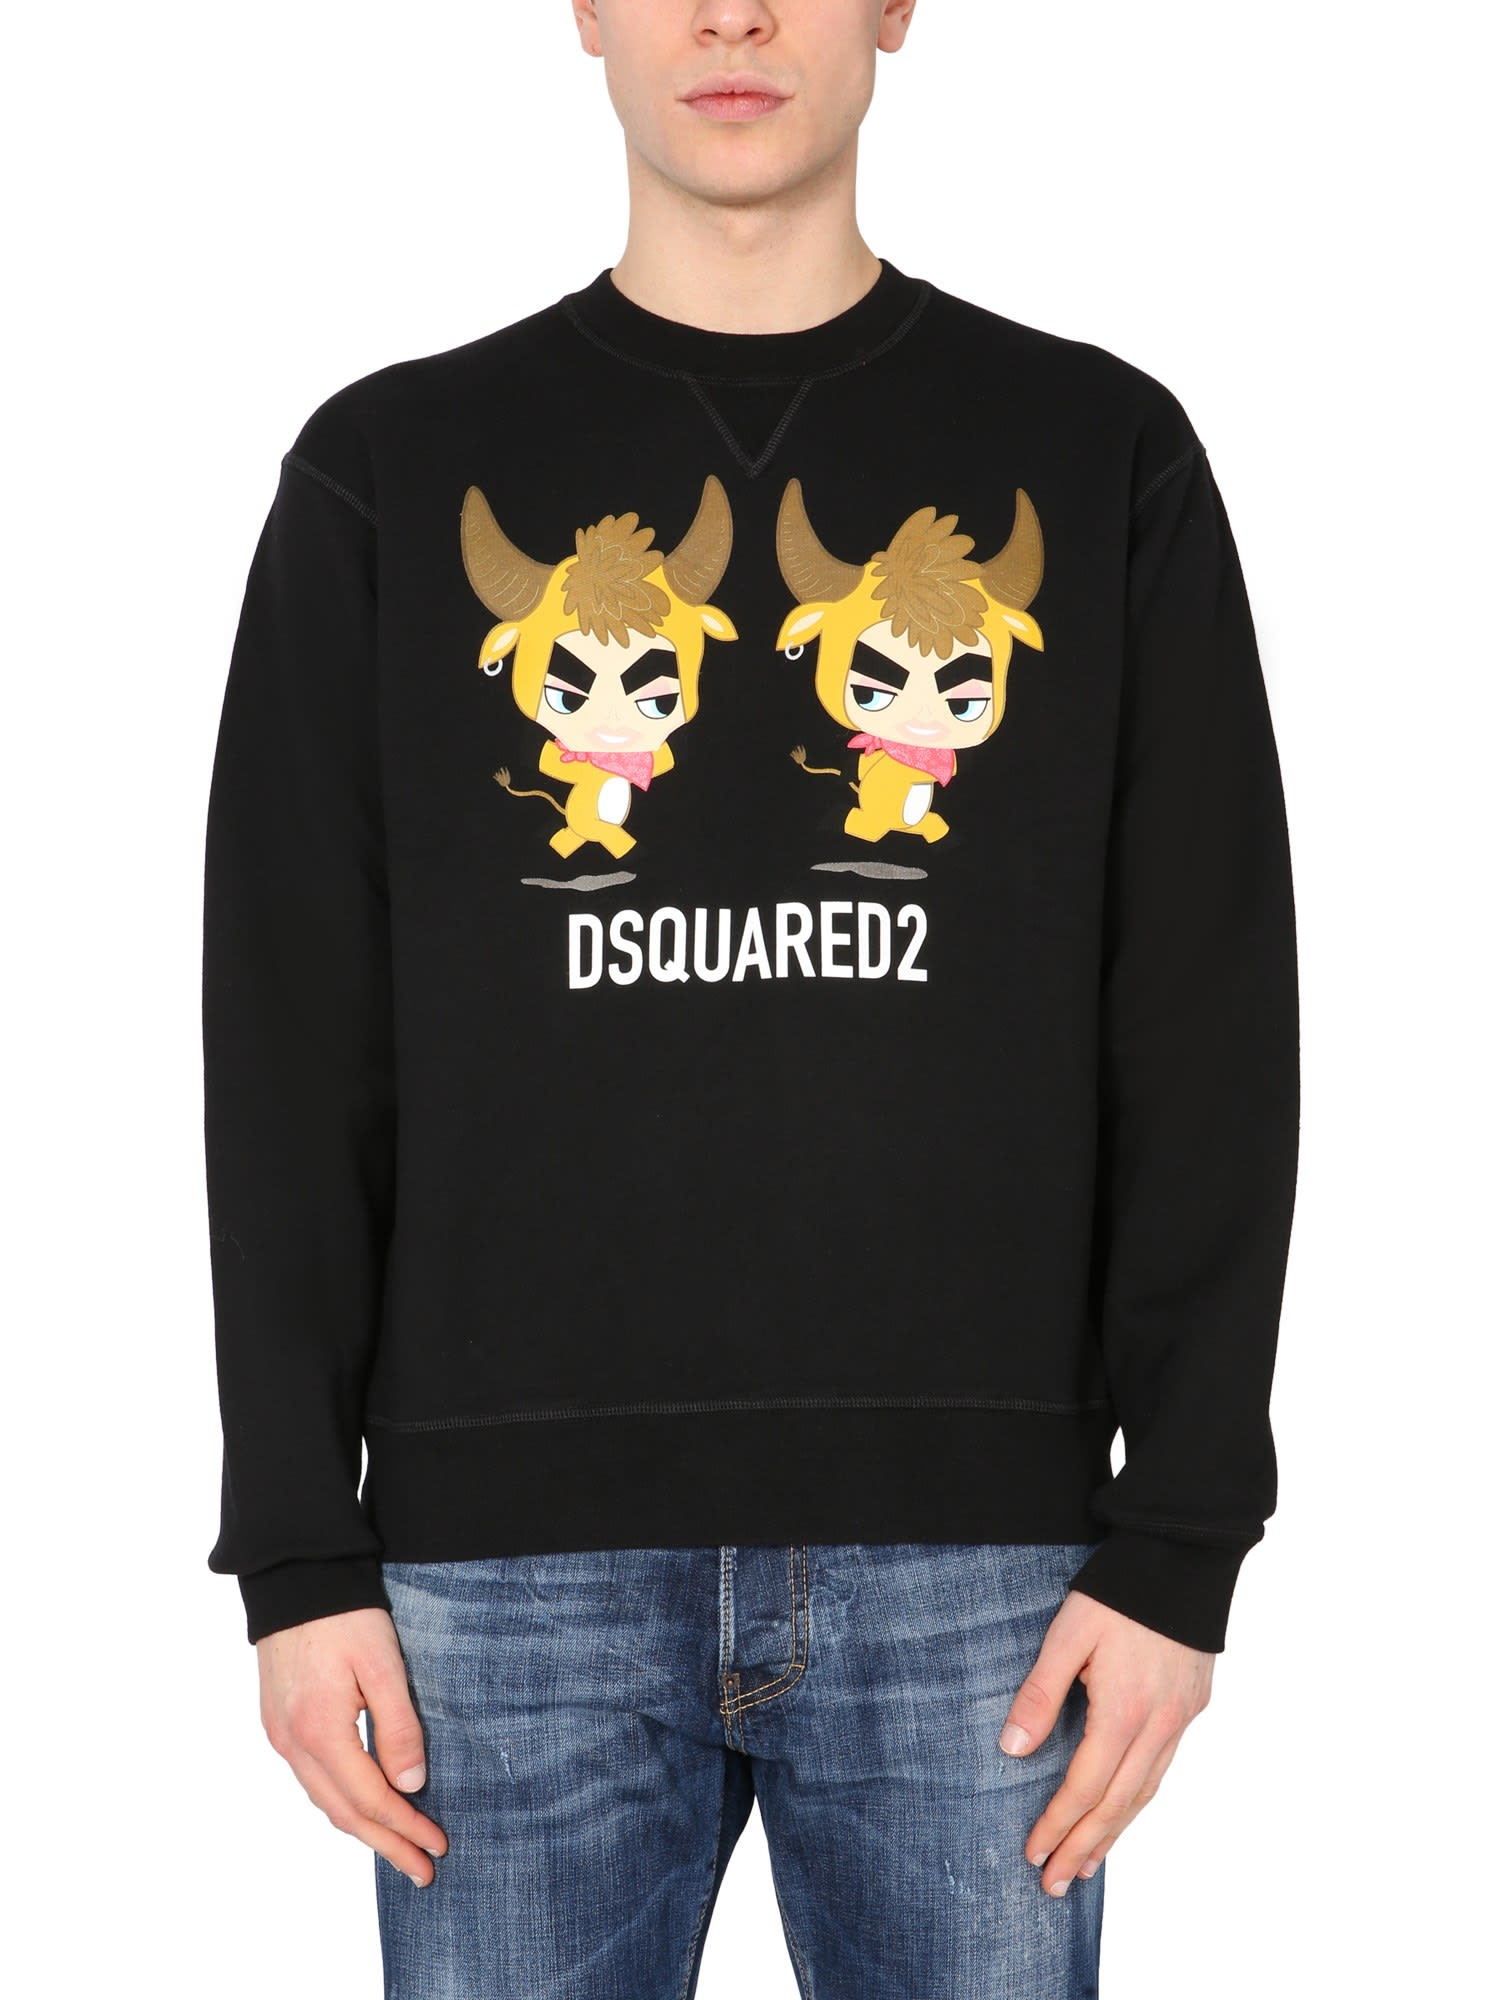 Dsquared2 Clothing YEAR OF THE OX SWEATSHIRT